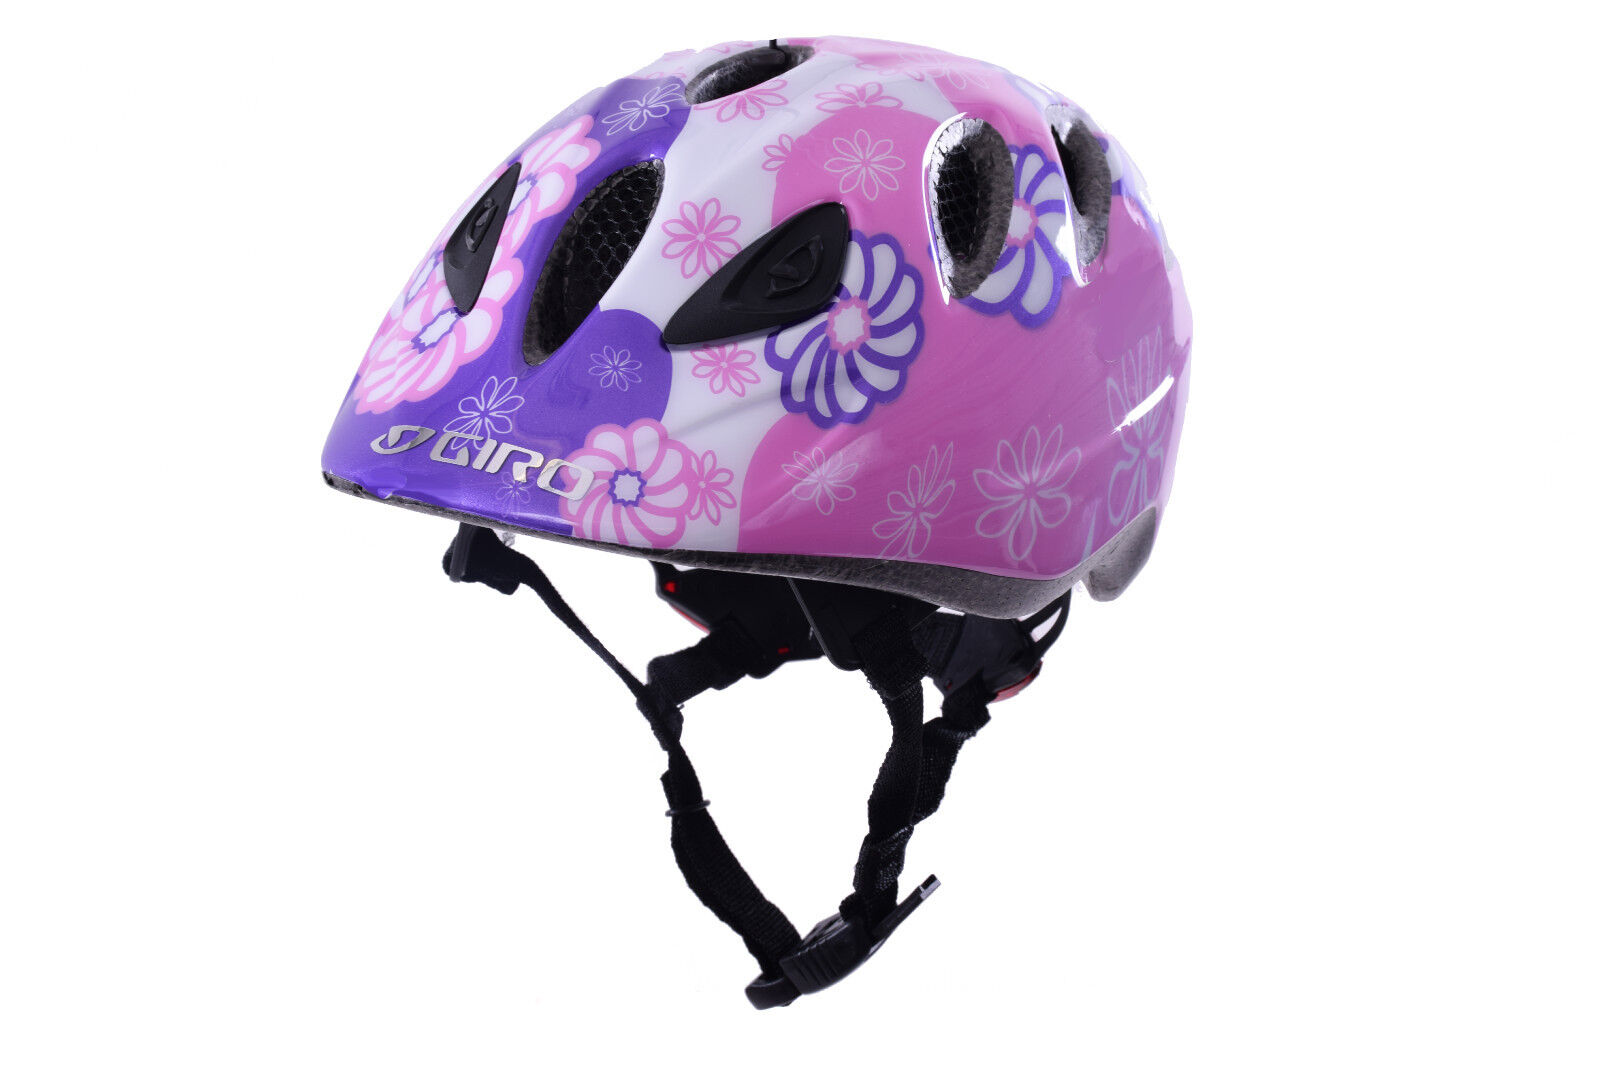 GIRO RASCAL KIDS GIRLS CRASH HELMET BUILT IN LED LIGHTS 50-54cm PINK FLOWERS